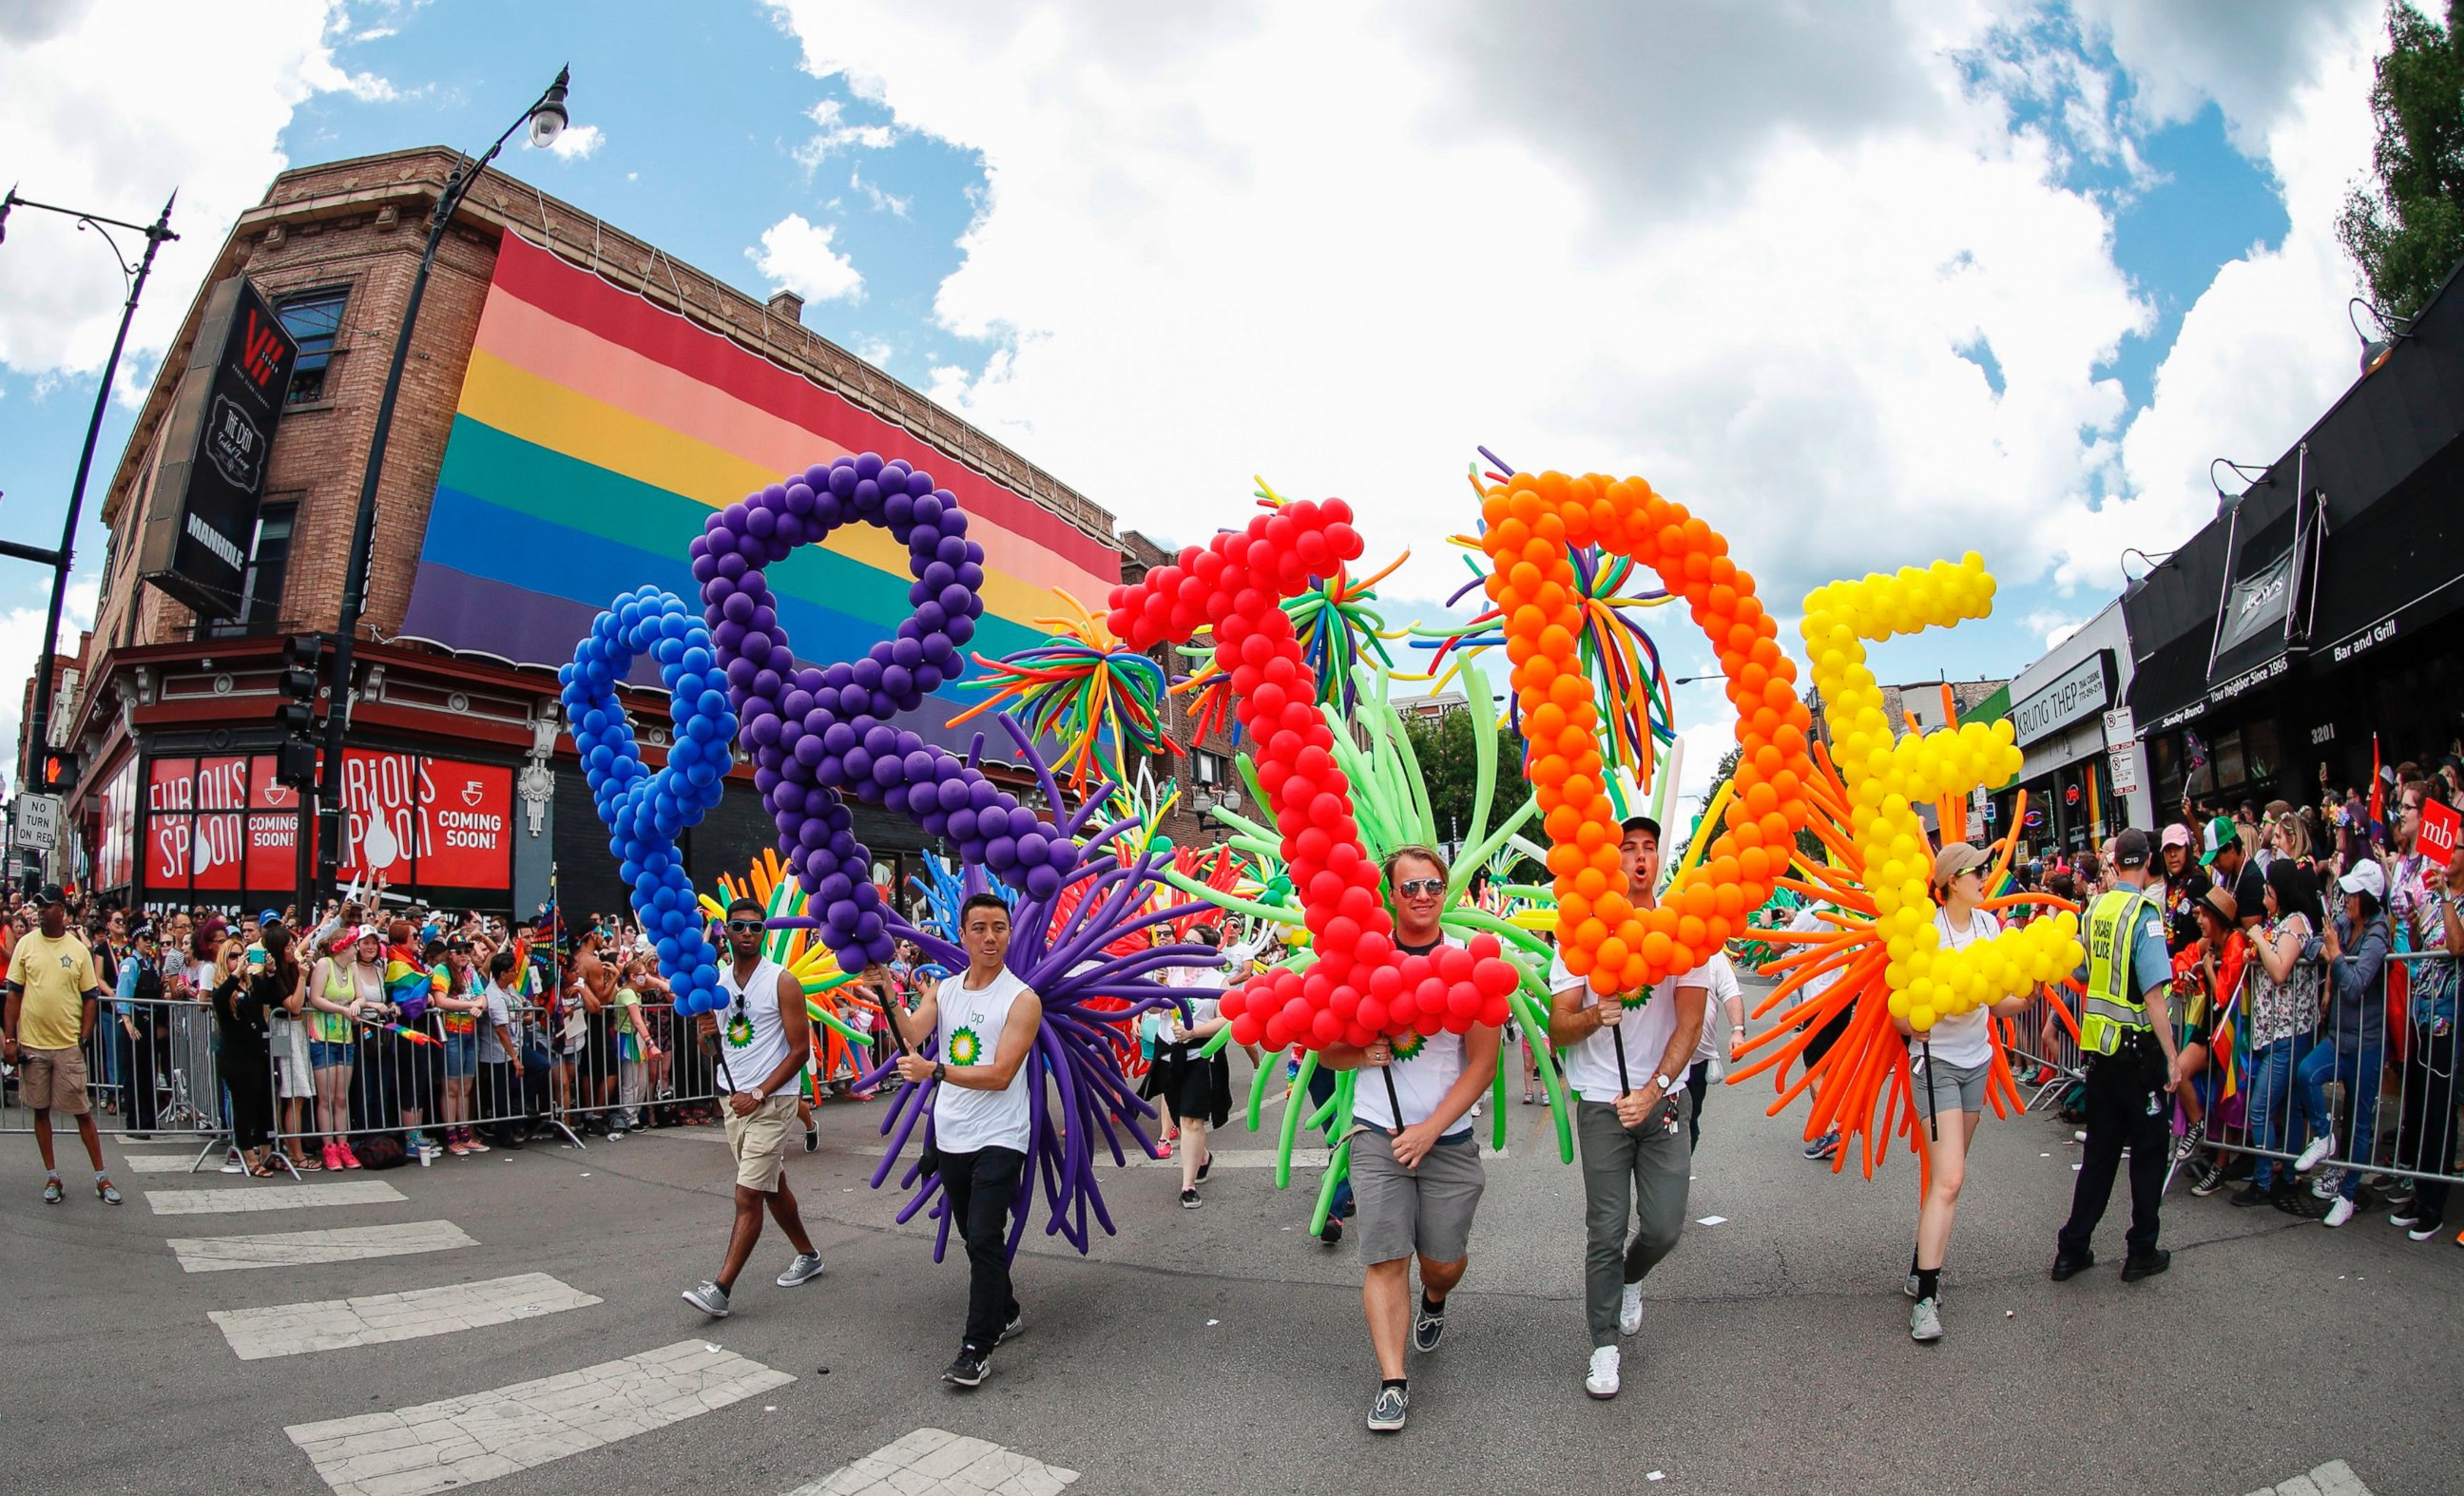 The gay pride parade